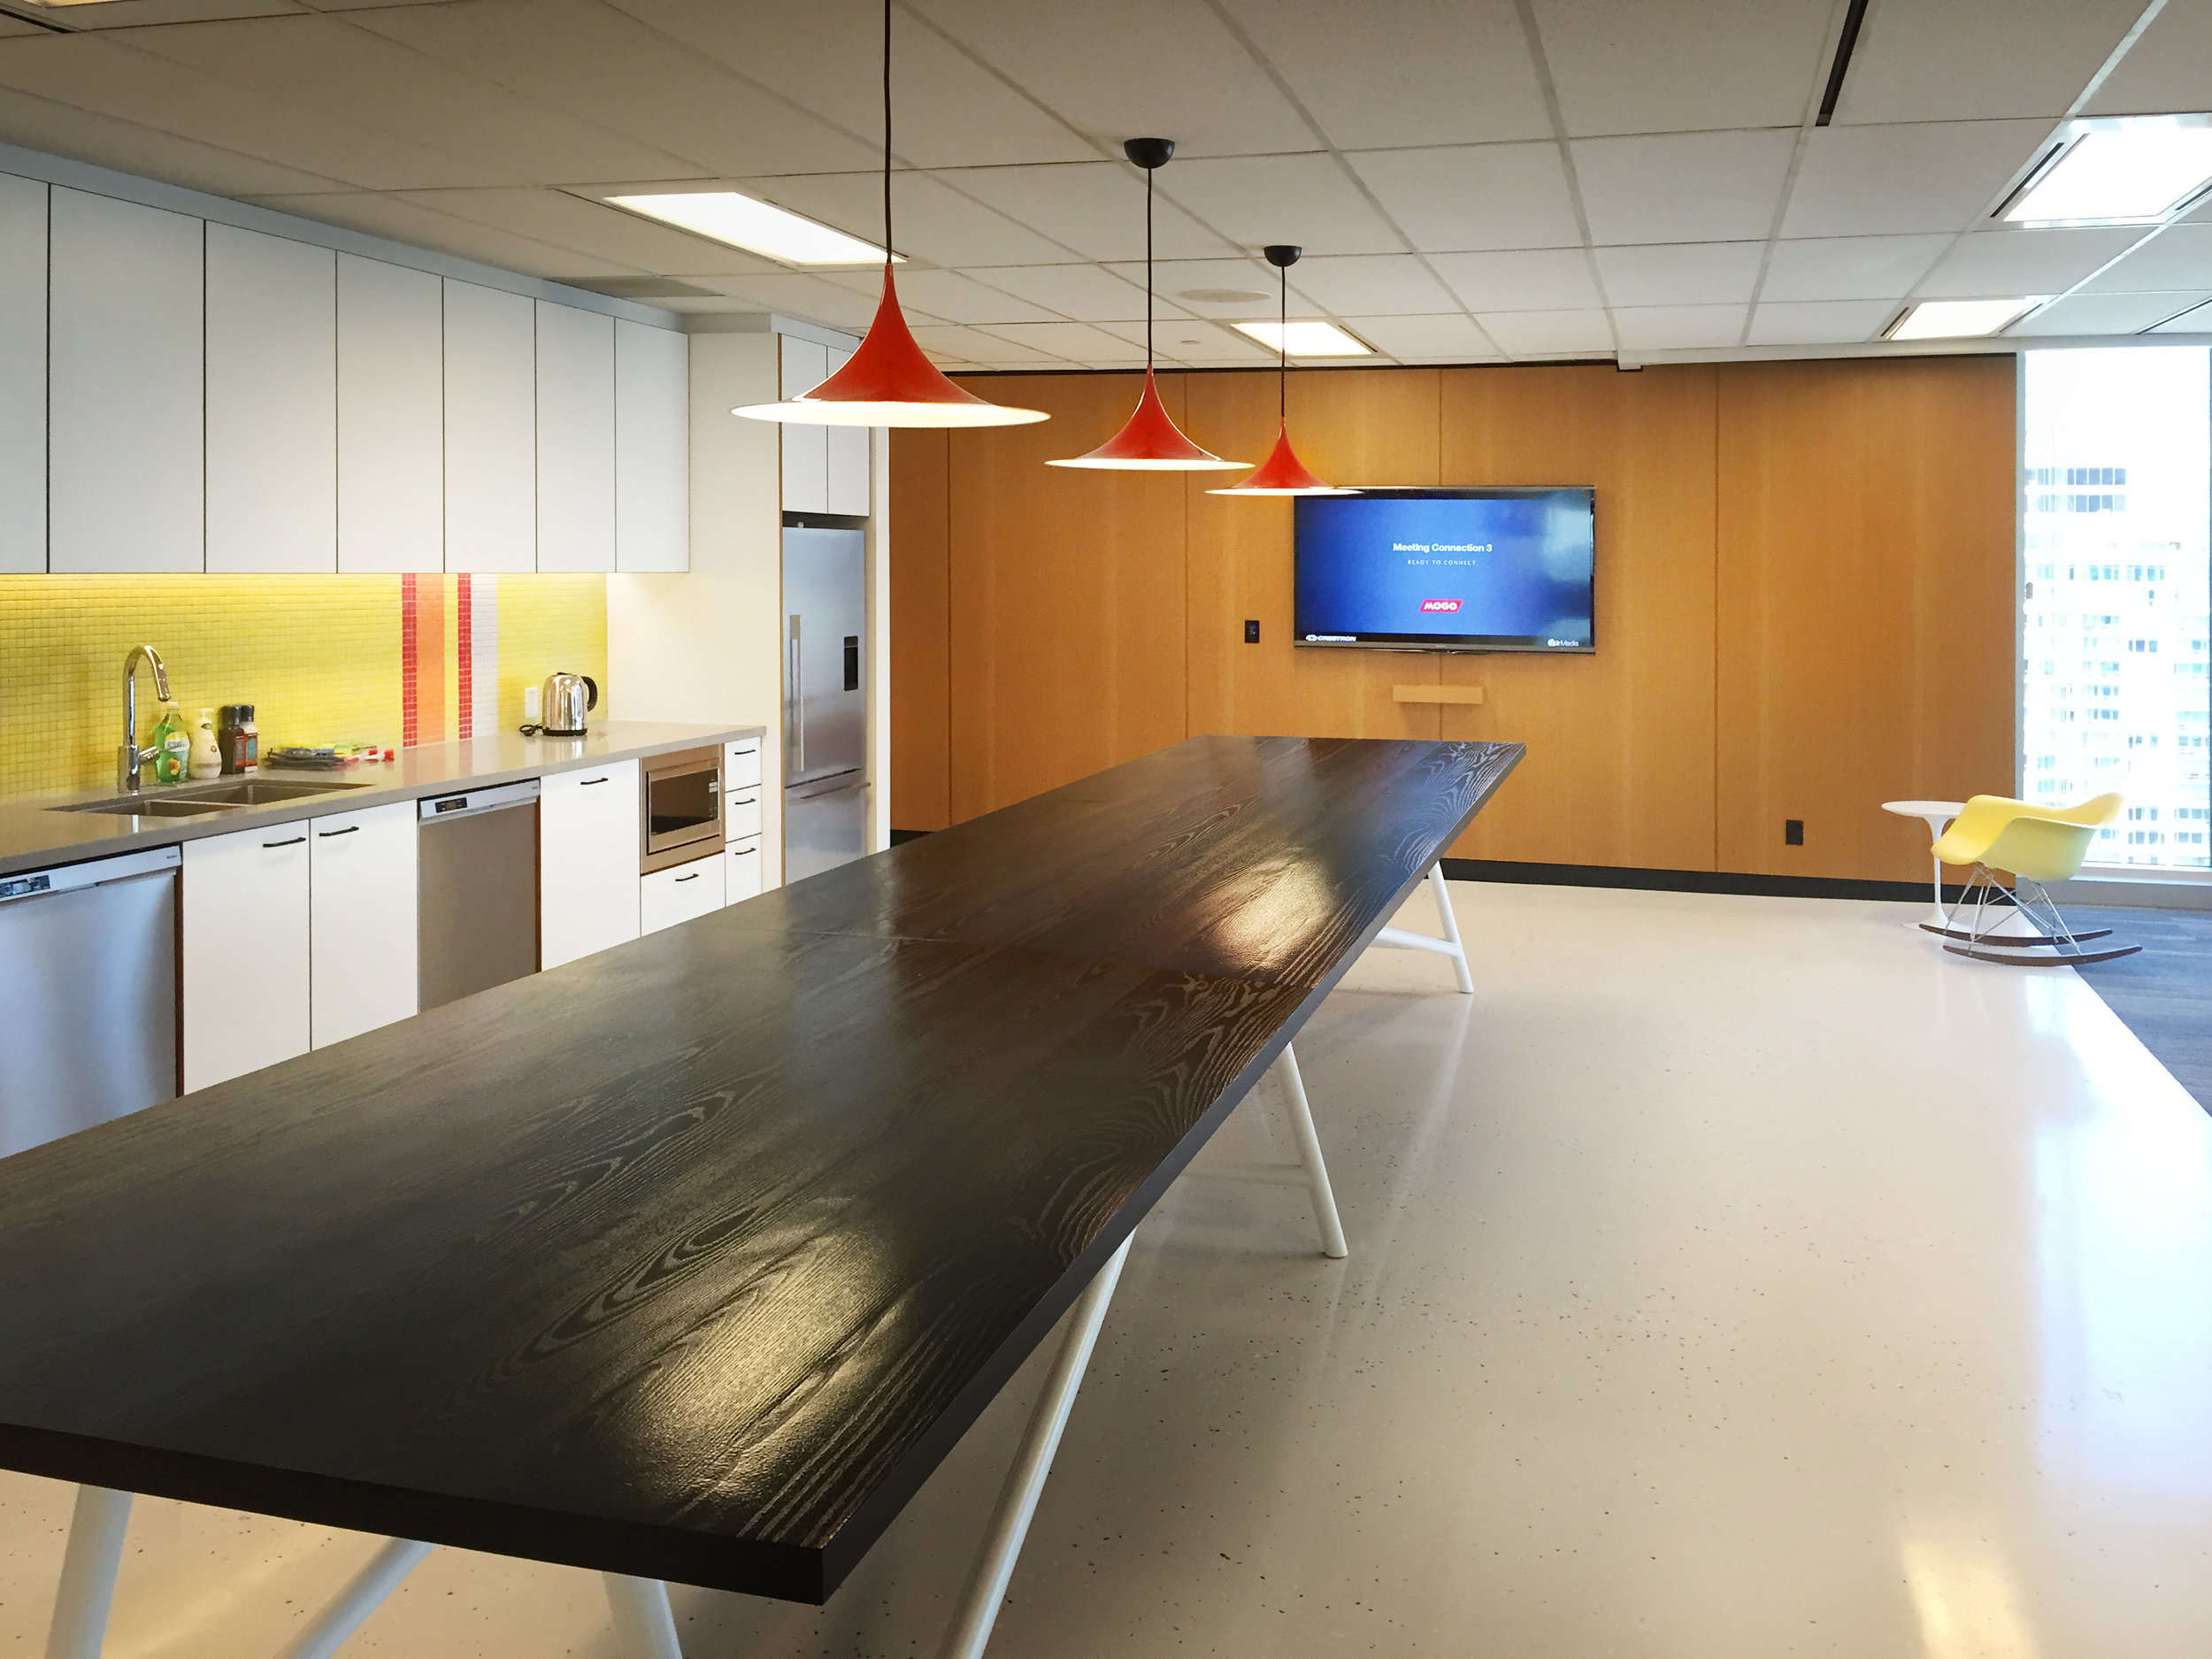 The lunchroom is an open, bright and inviting facility that offers a TV for the Canucks game, and doubles as a large gathering space, where the TV is available for video presentation.